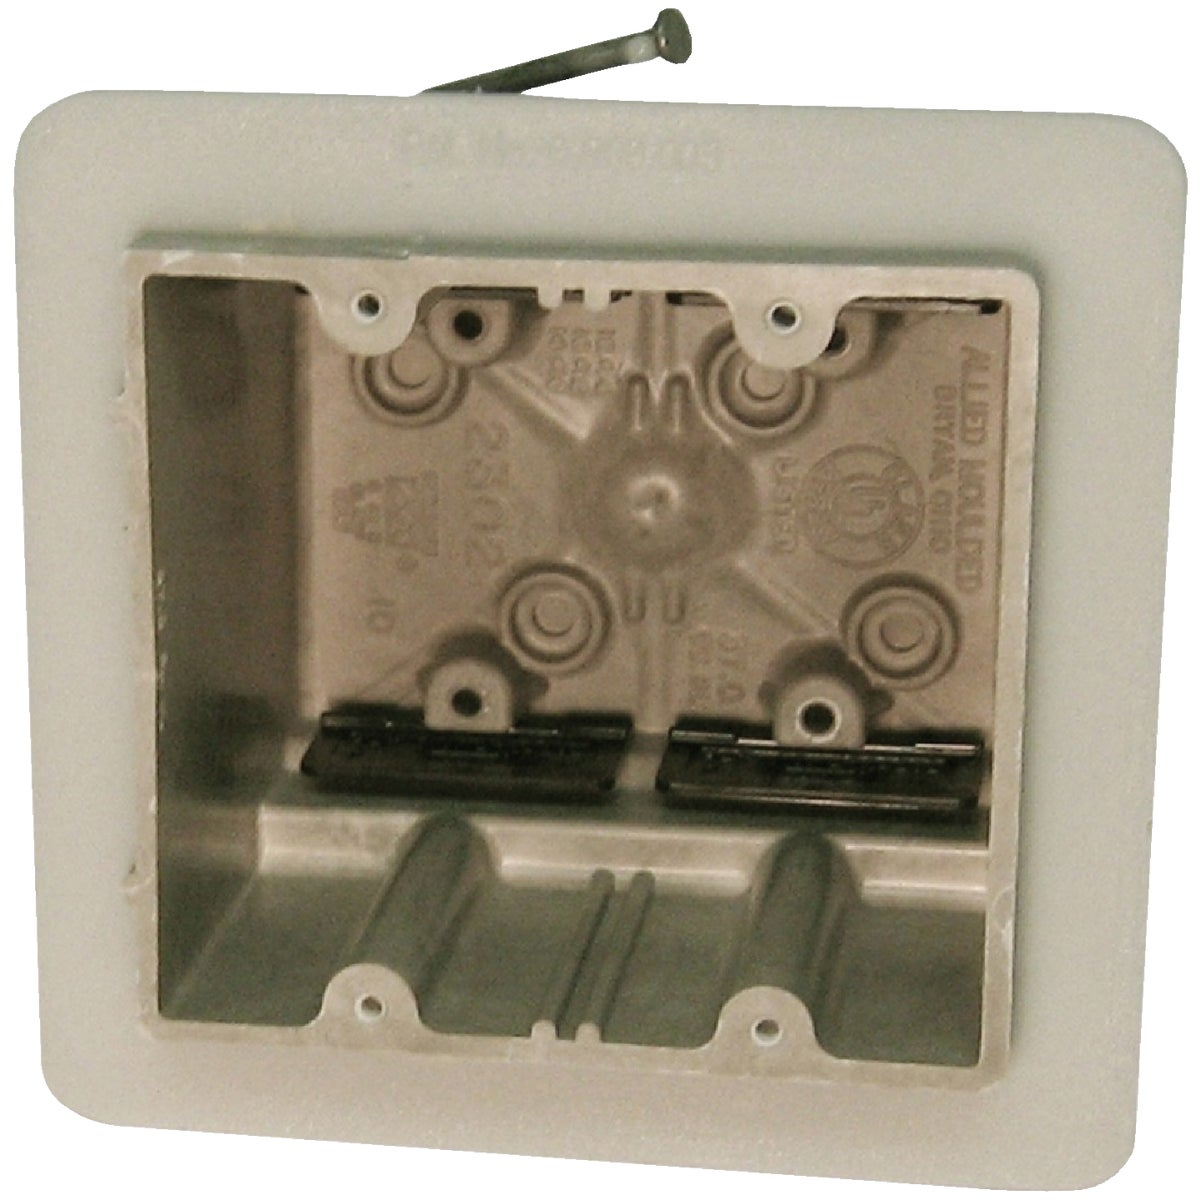 TWO GANG VAPOR SEAL BOX - H2302-NKV by Allied Moulded